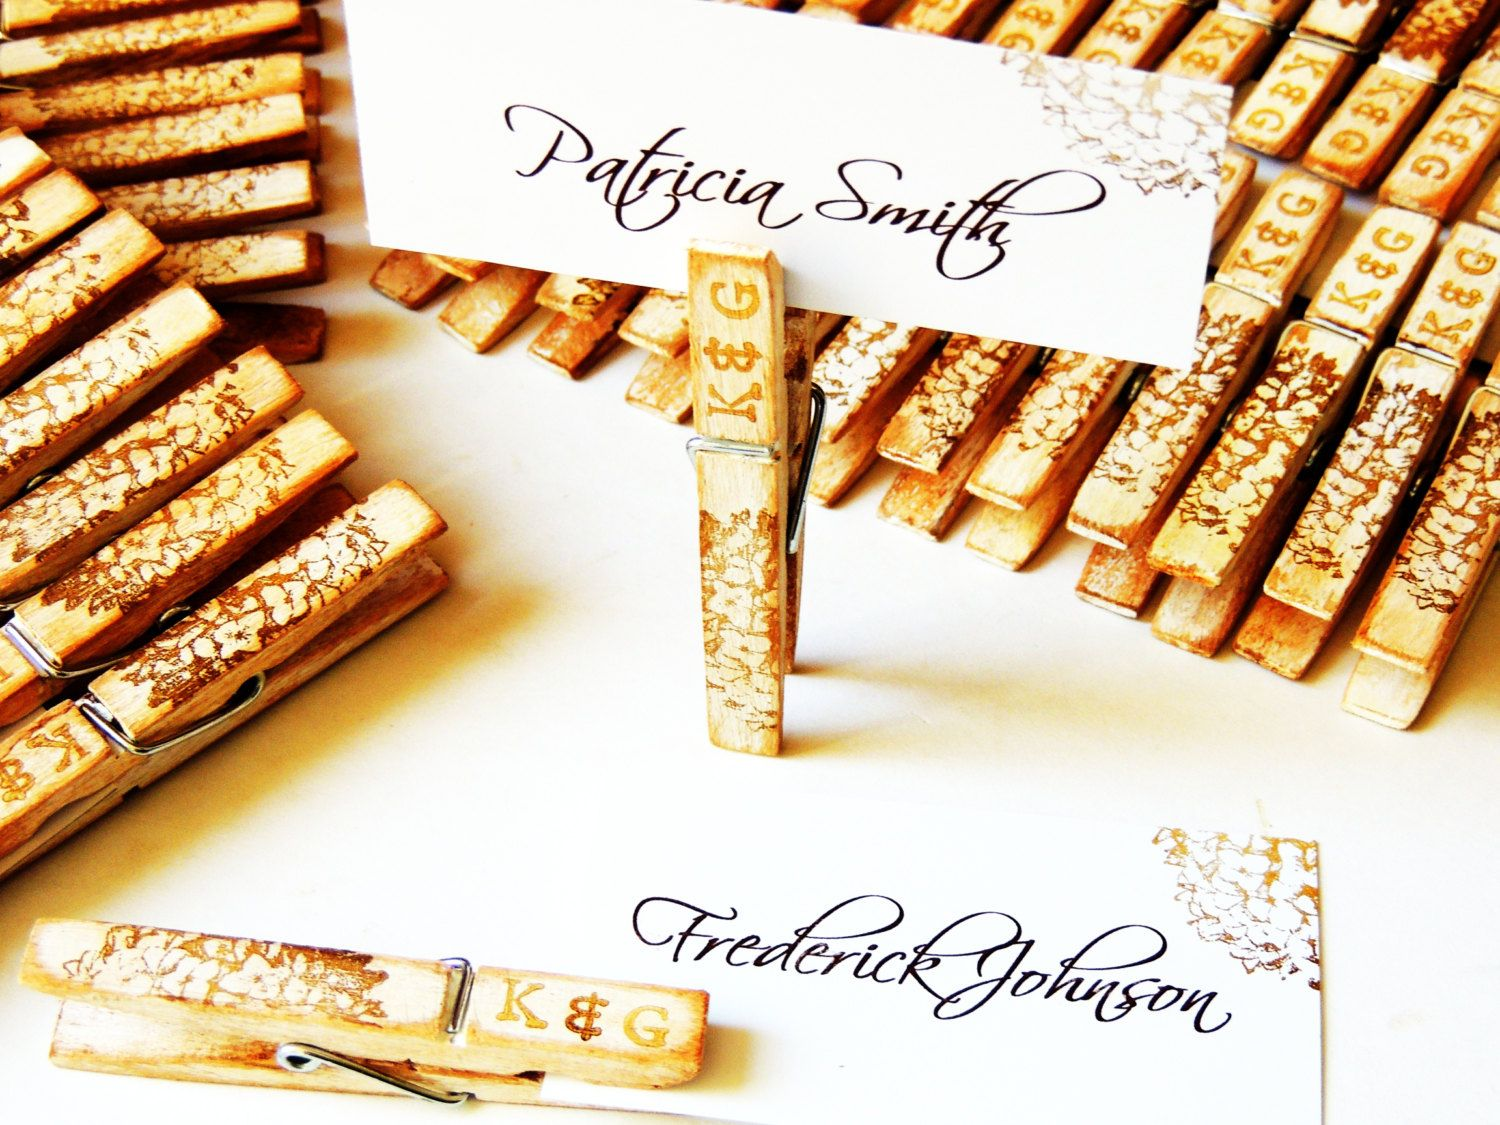 Wood Wedding Placecard Holder Missy Not For Place Cards But Signs And Etc Just To Dress Up The Clothes Pins